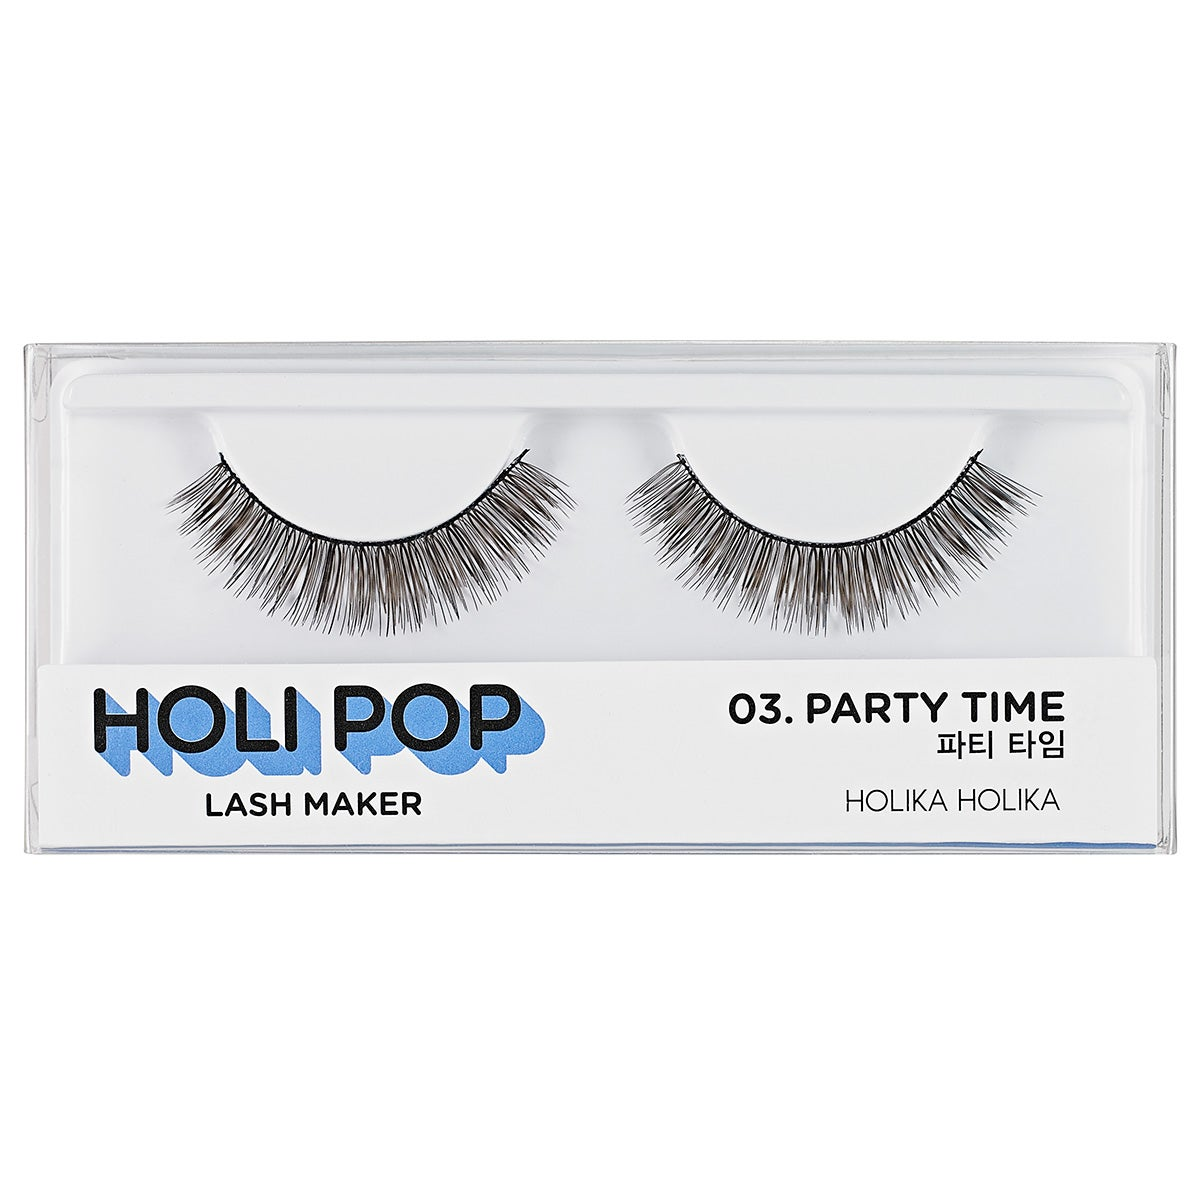 Holika Holika Holi Pop Lash Maker - 3 Party Time